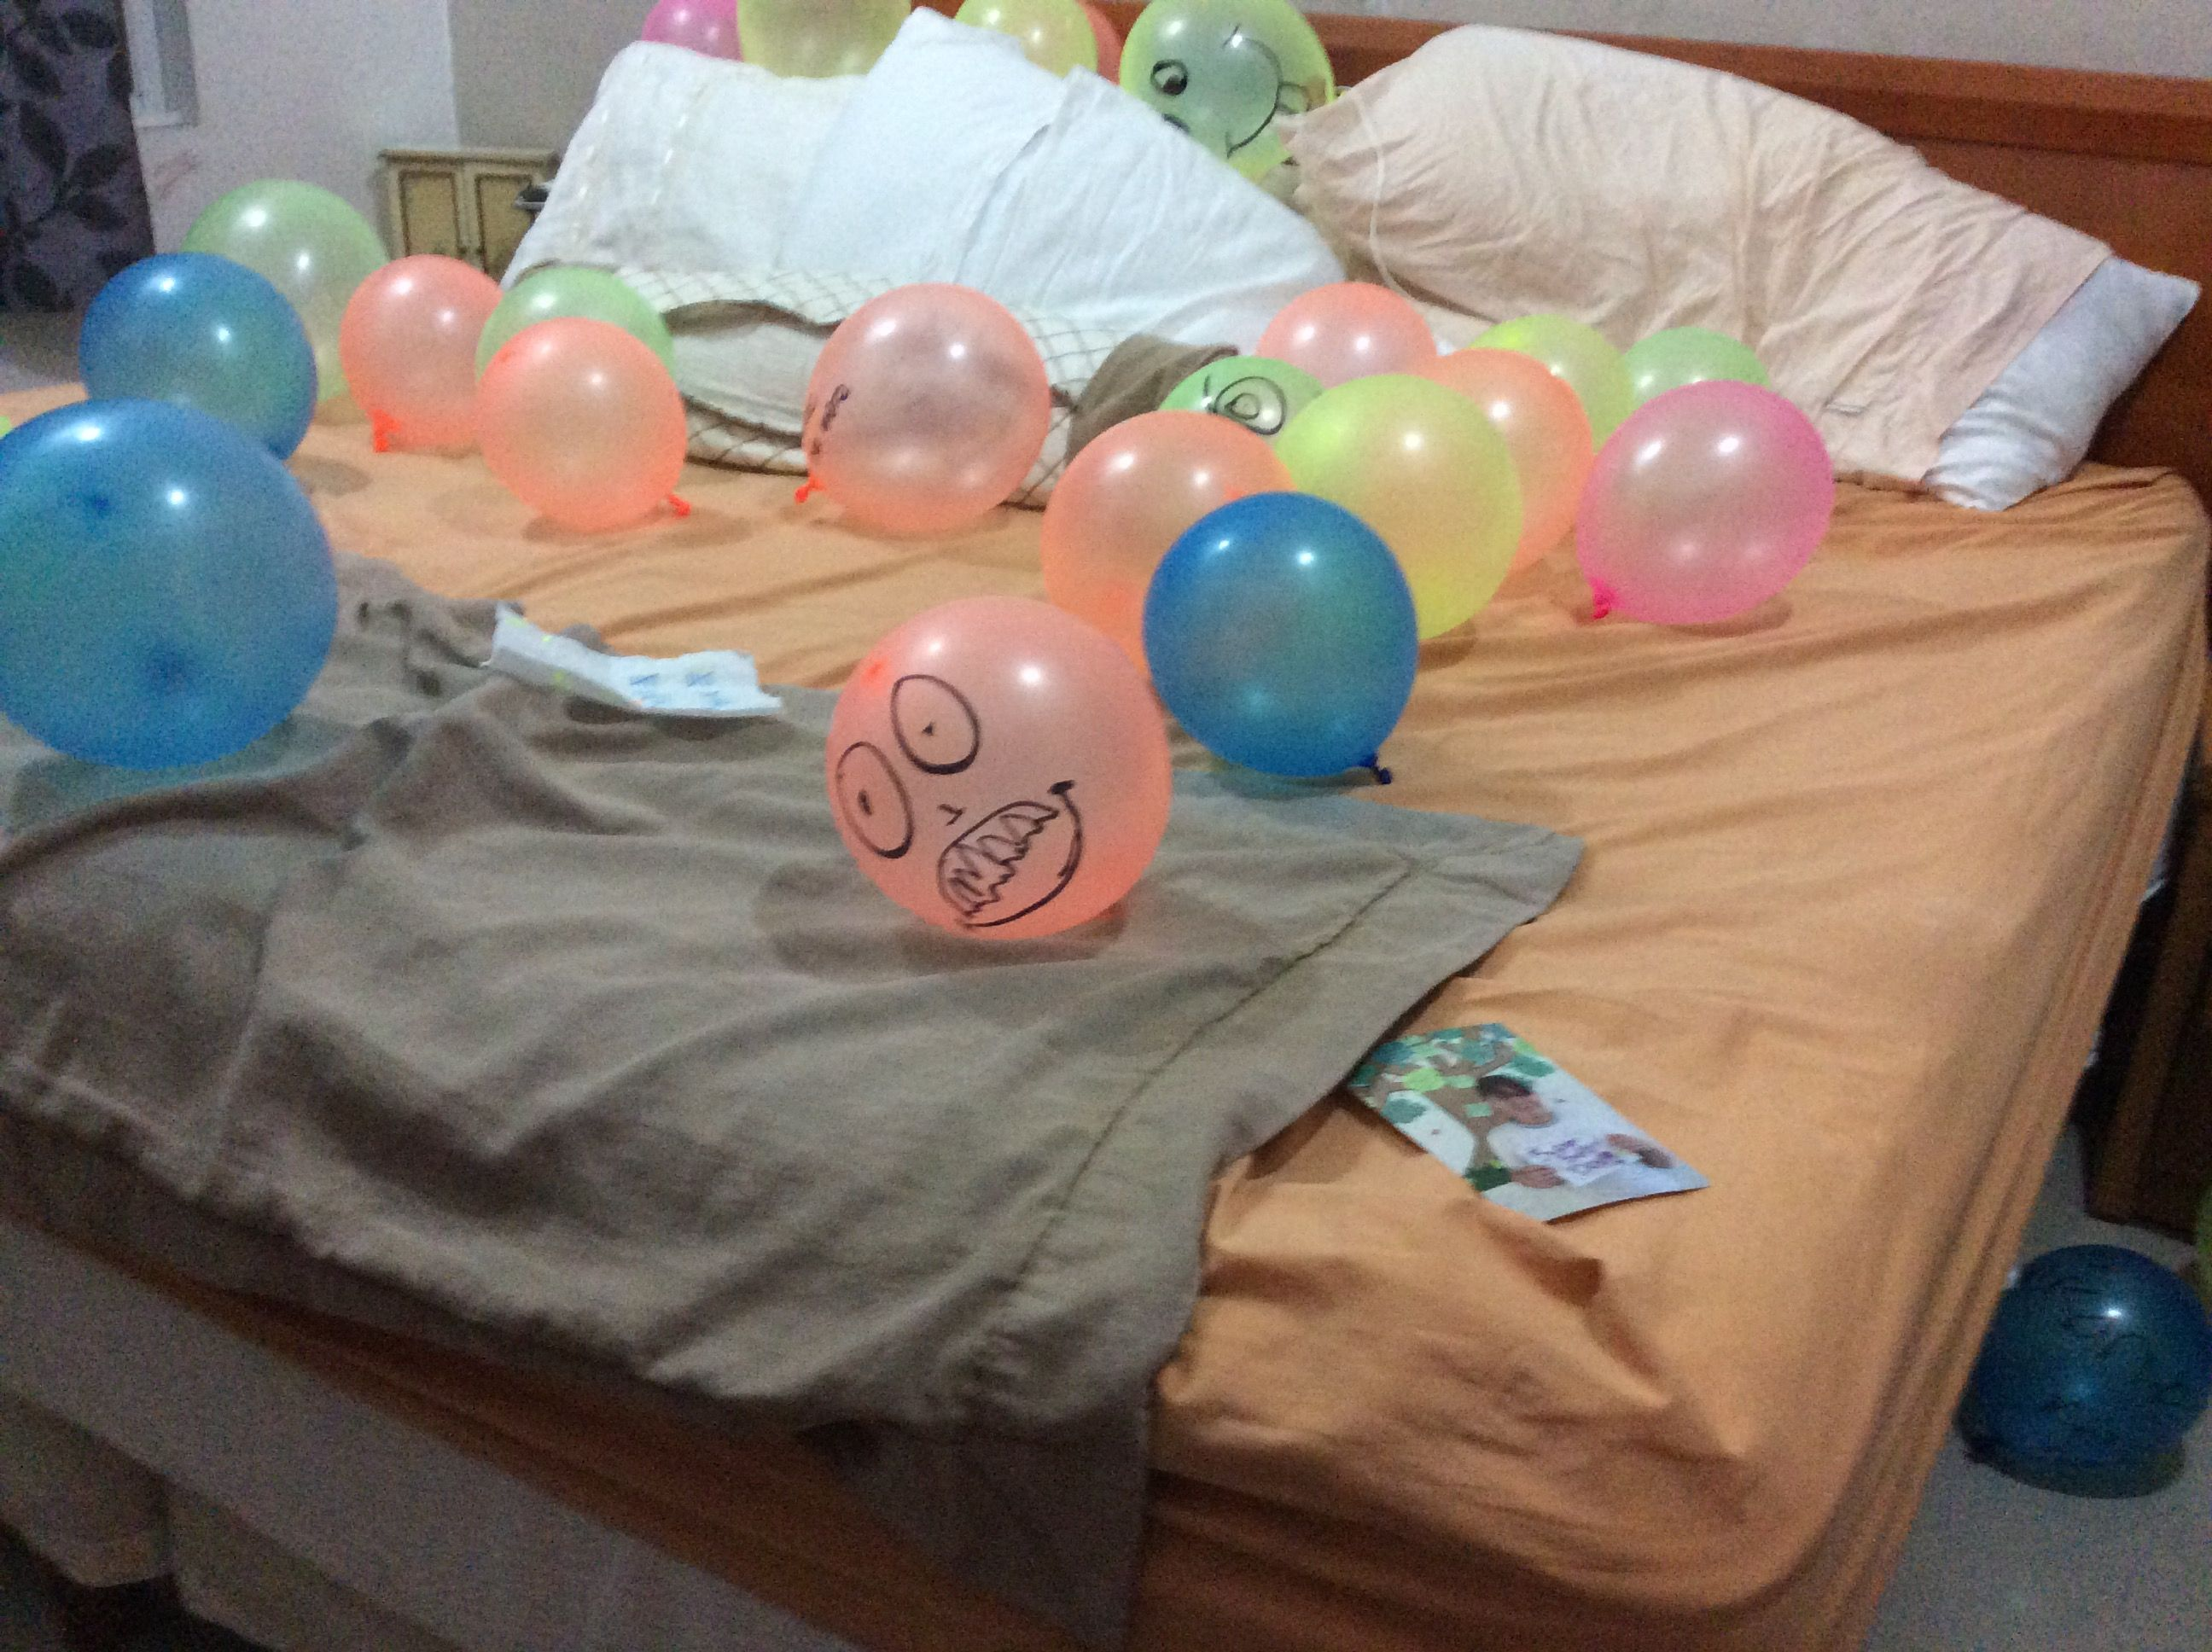 Awesome idea for birthday fill their room